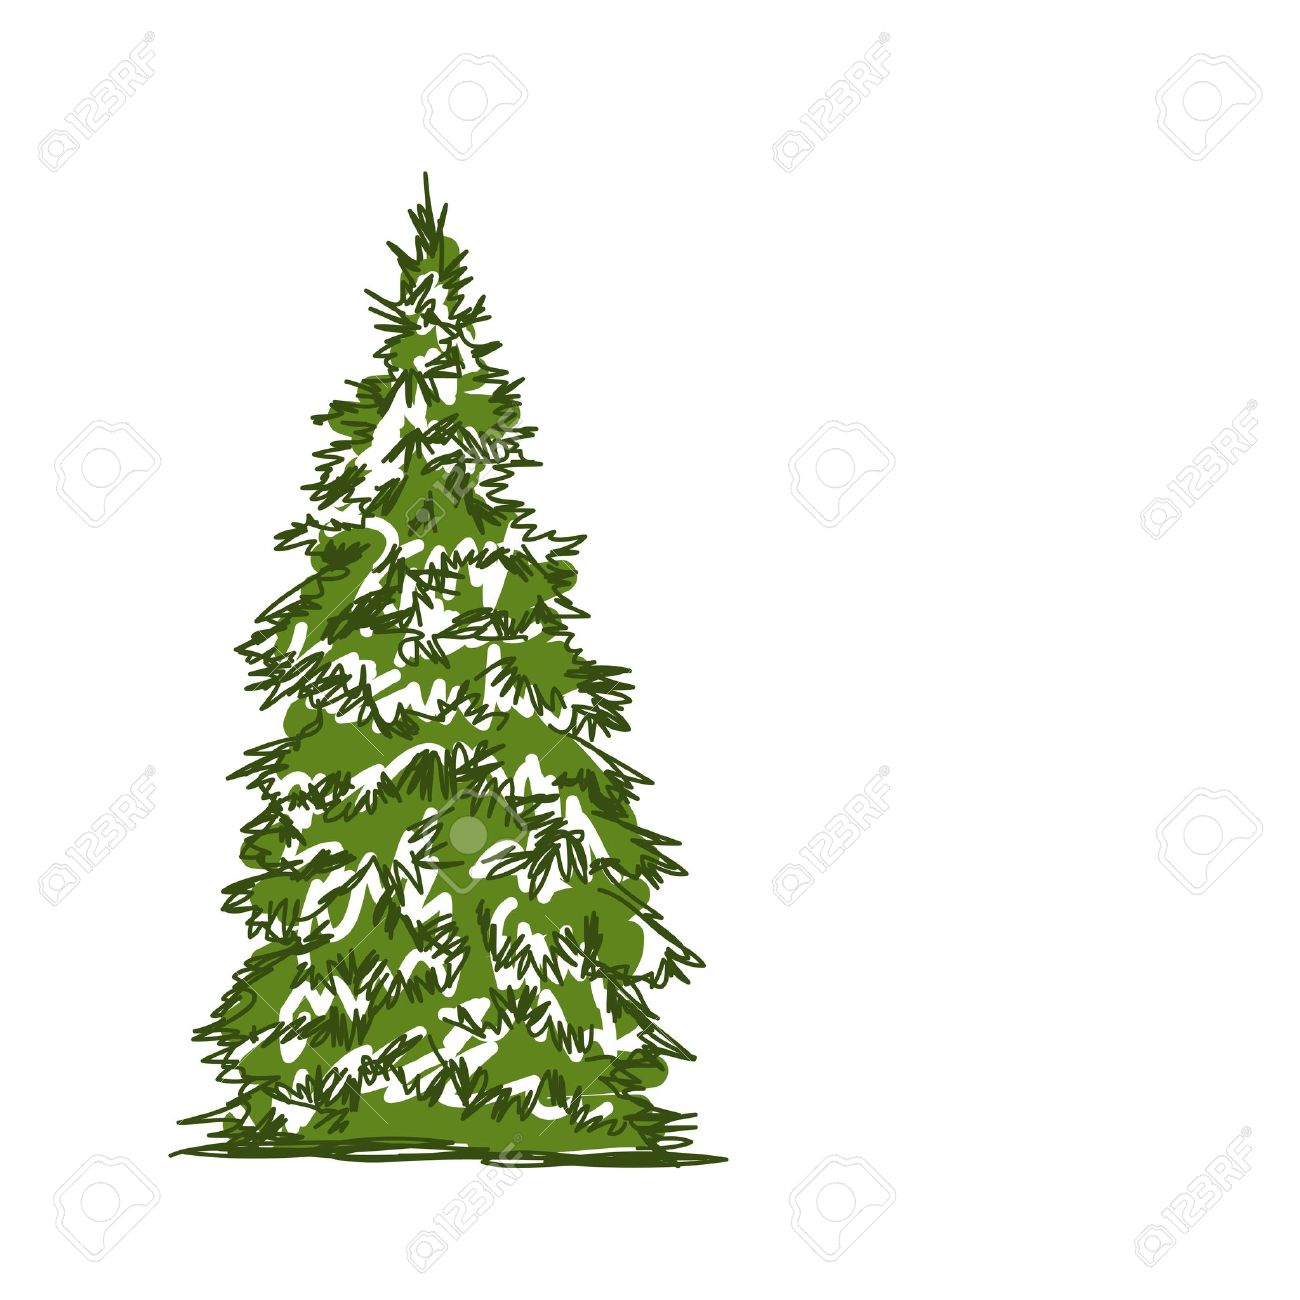 pine tree isolated on white sketch for your design royalty free rh 123rf com vector pine trees vector pine trees